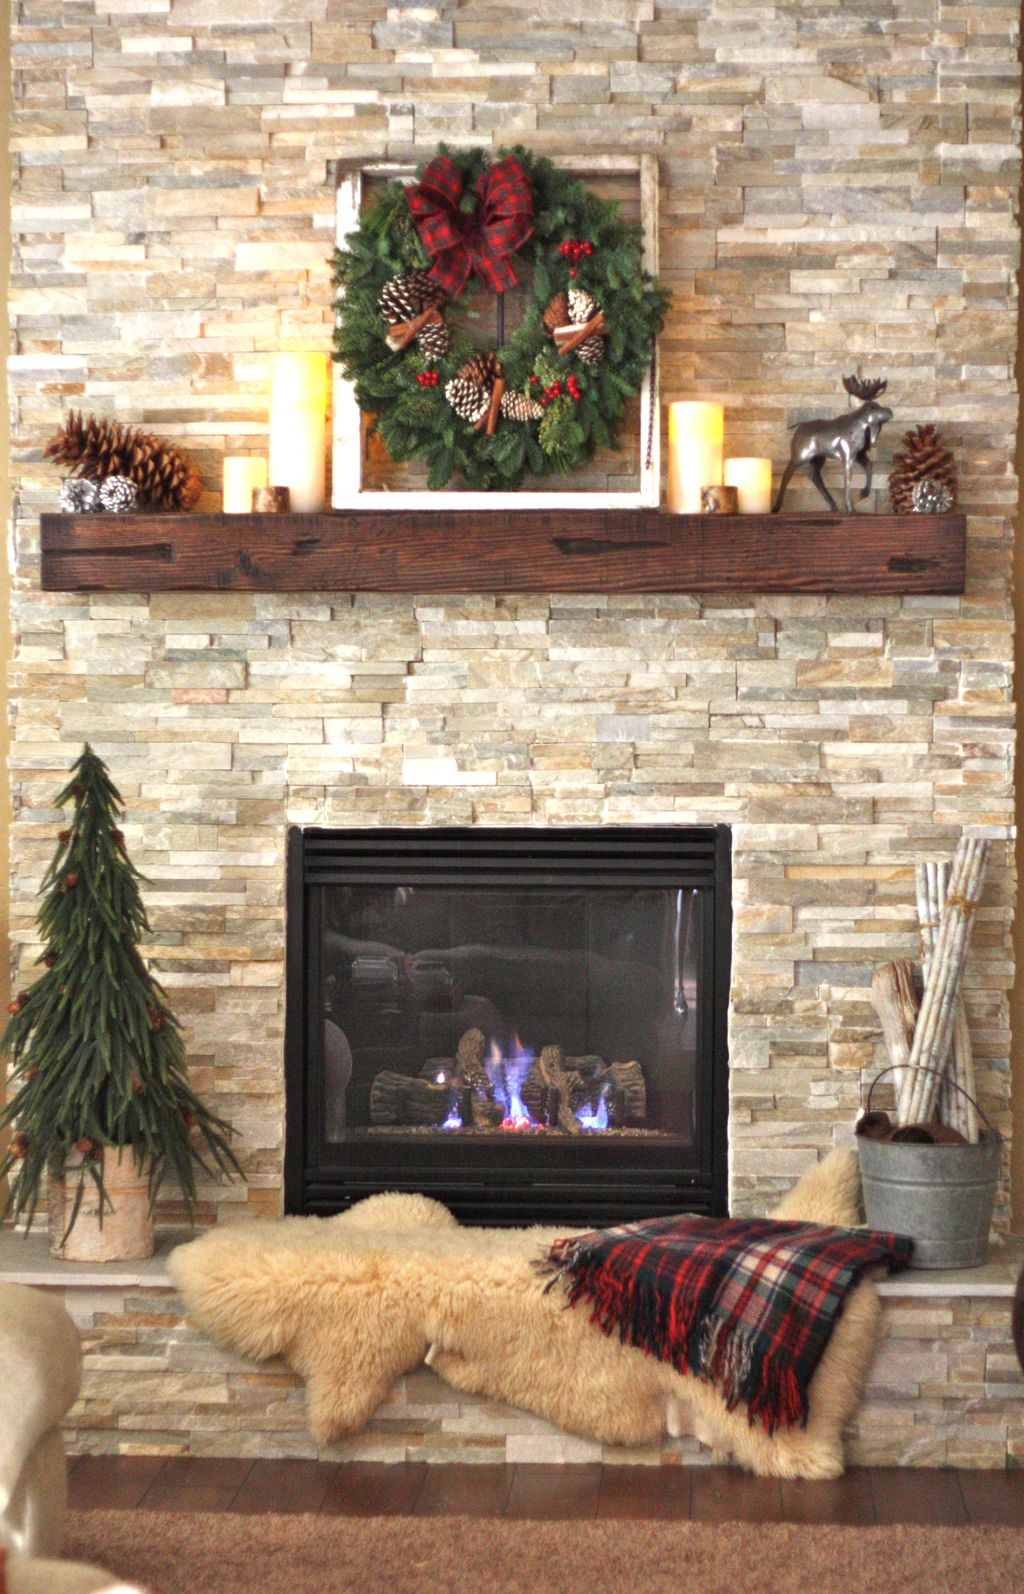 Inspiring Rustic Christmas Fireplace Ideas To Makes Your Home Warmer 90